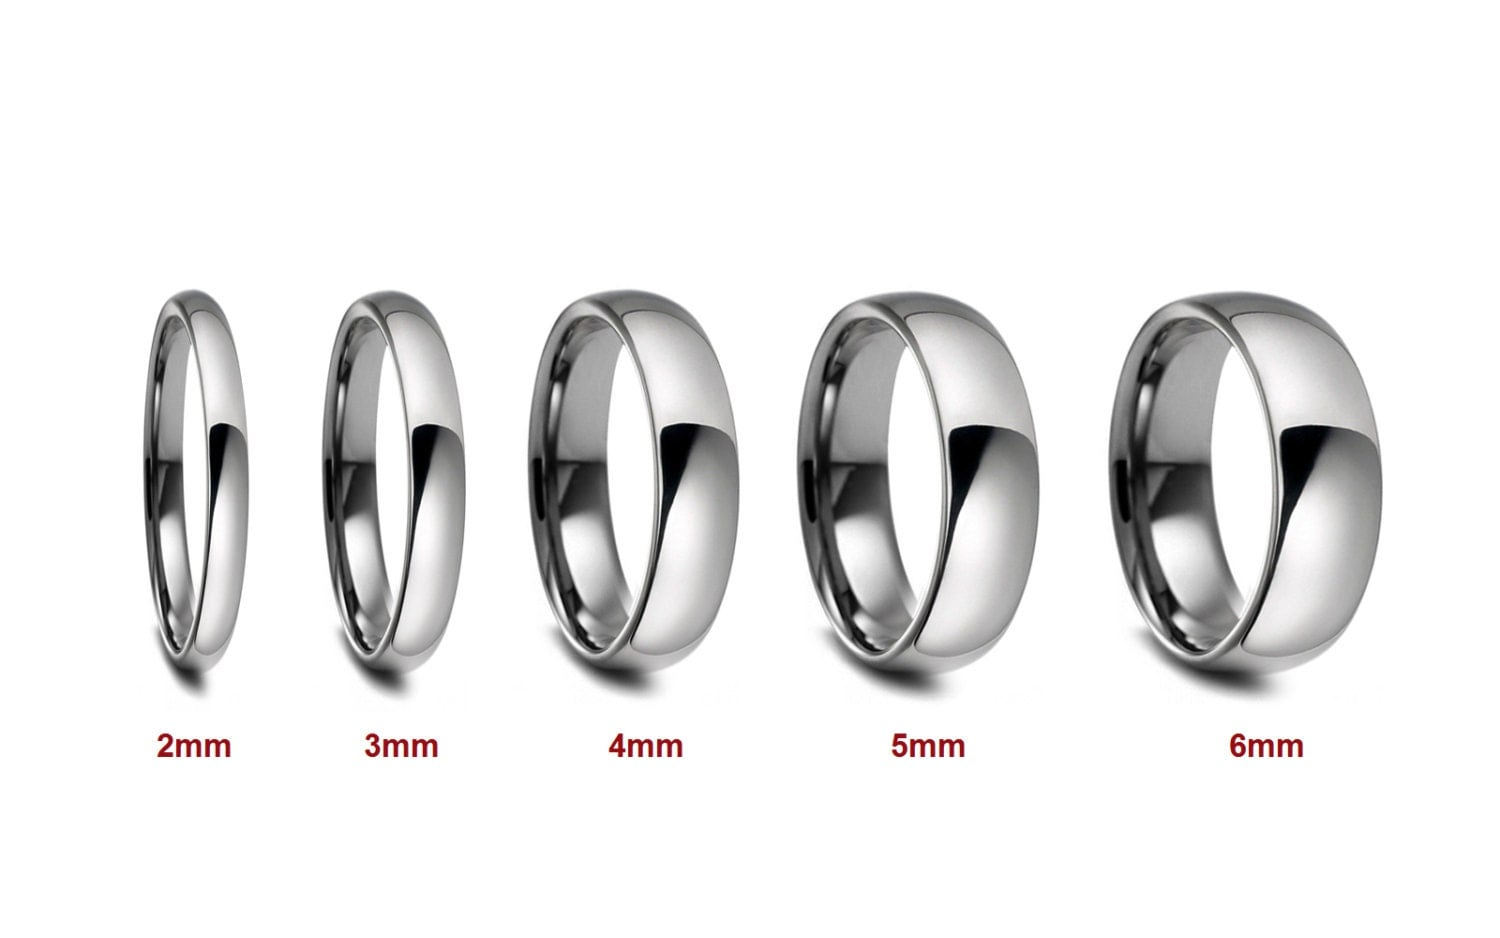 2mm 3mm 4mm 5mm 6mm width stainless 2mm wedding band 2mm 3mm 4mm 5mm 6mm Width Stainless Steel Wedding Band Comfort Fit Dome Top Polished or Satin Brushed Finish